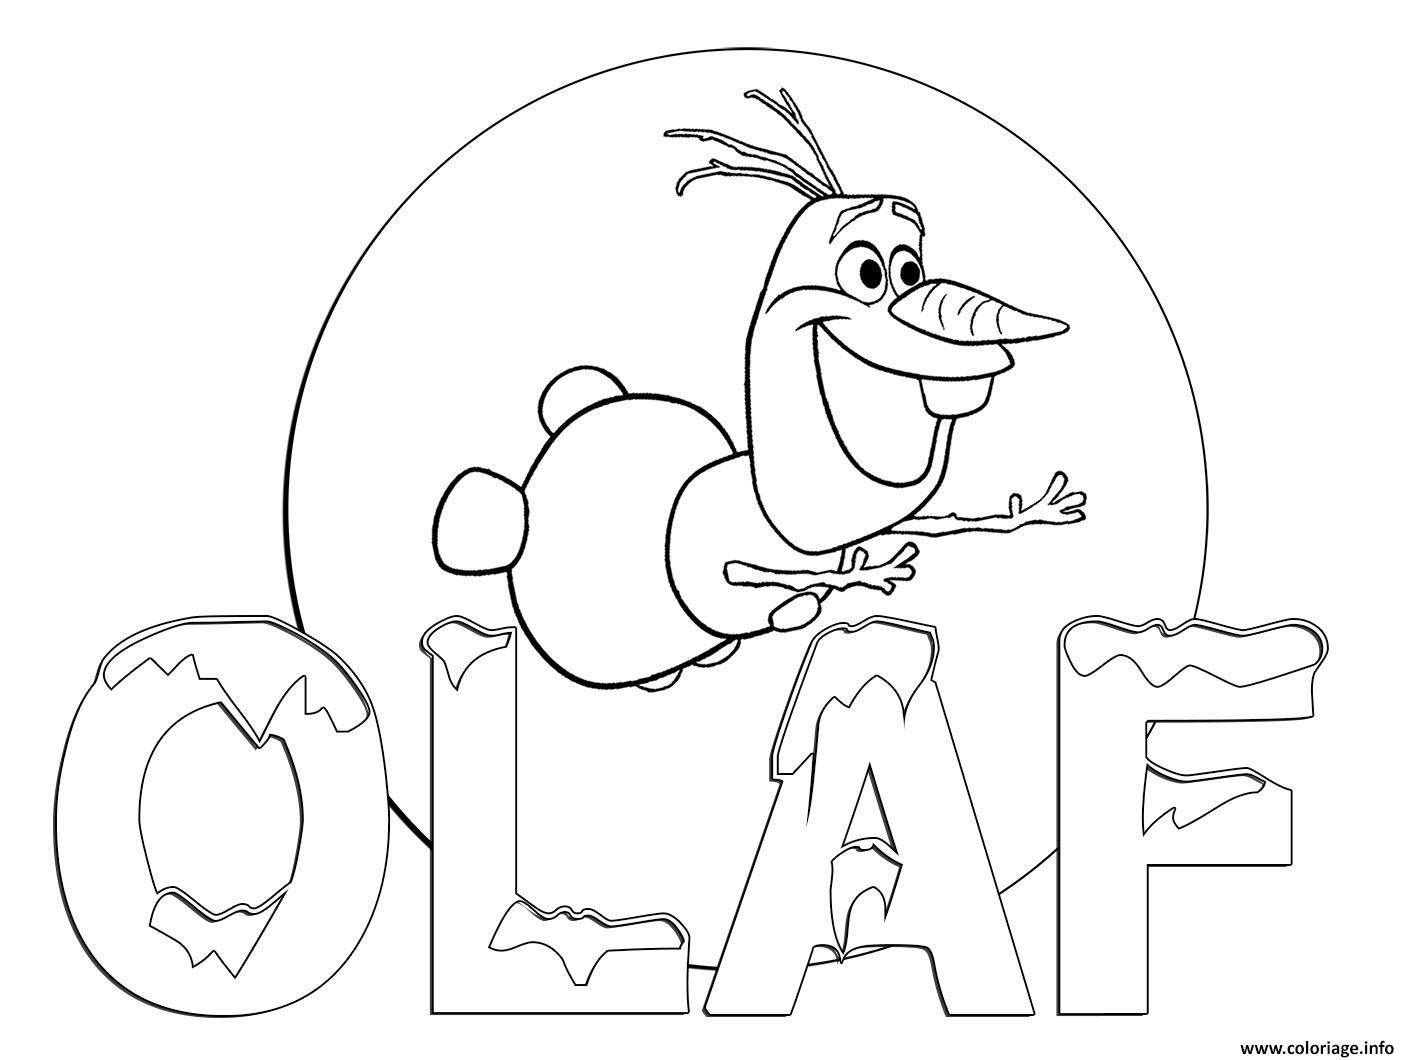 Coloriage Olaf 2017 dans Olaf Frozen Adventure